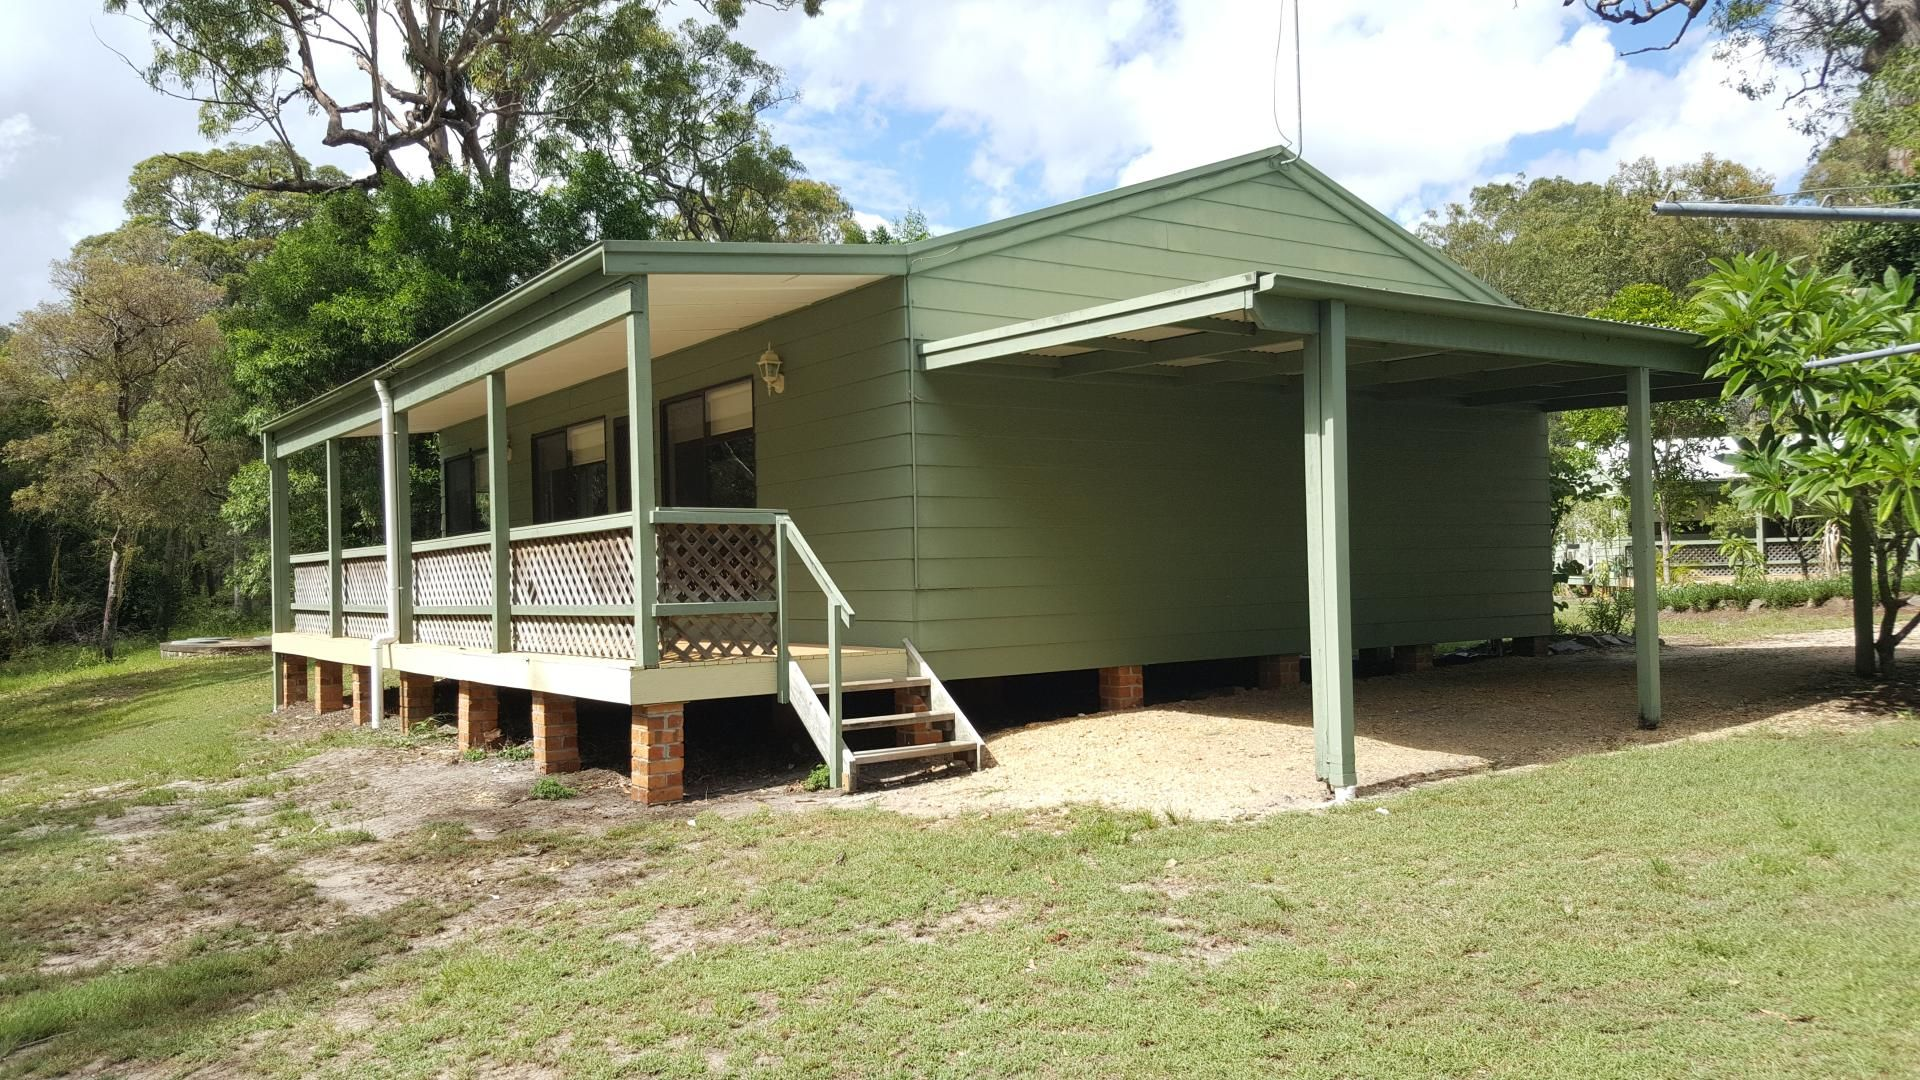 285 Fishermans Reach Road, Fishermans Reach NSW 2441, Image 0